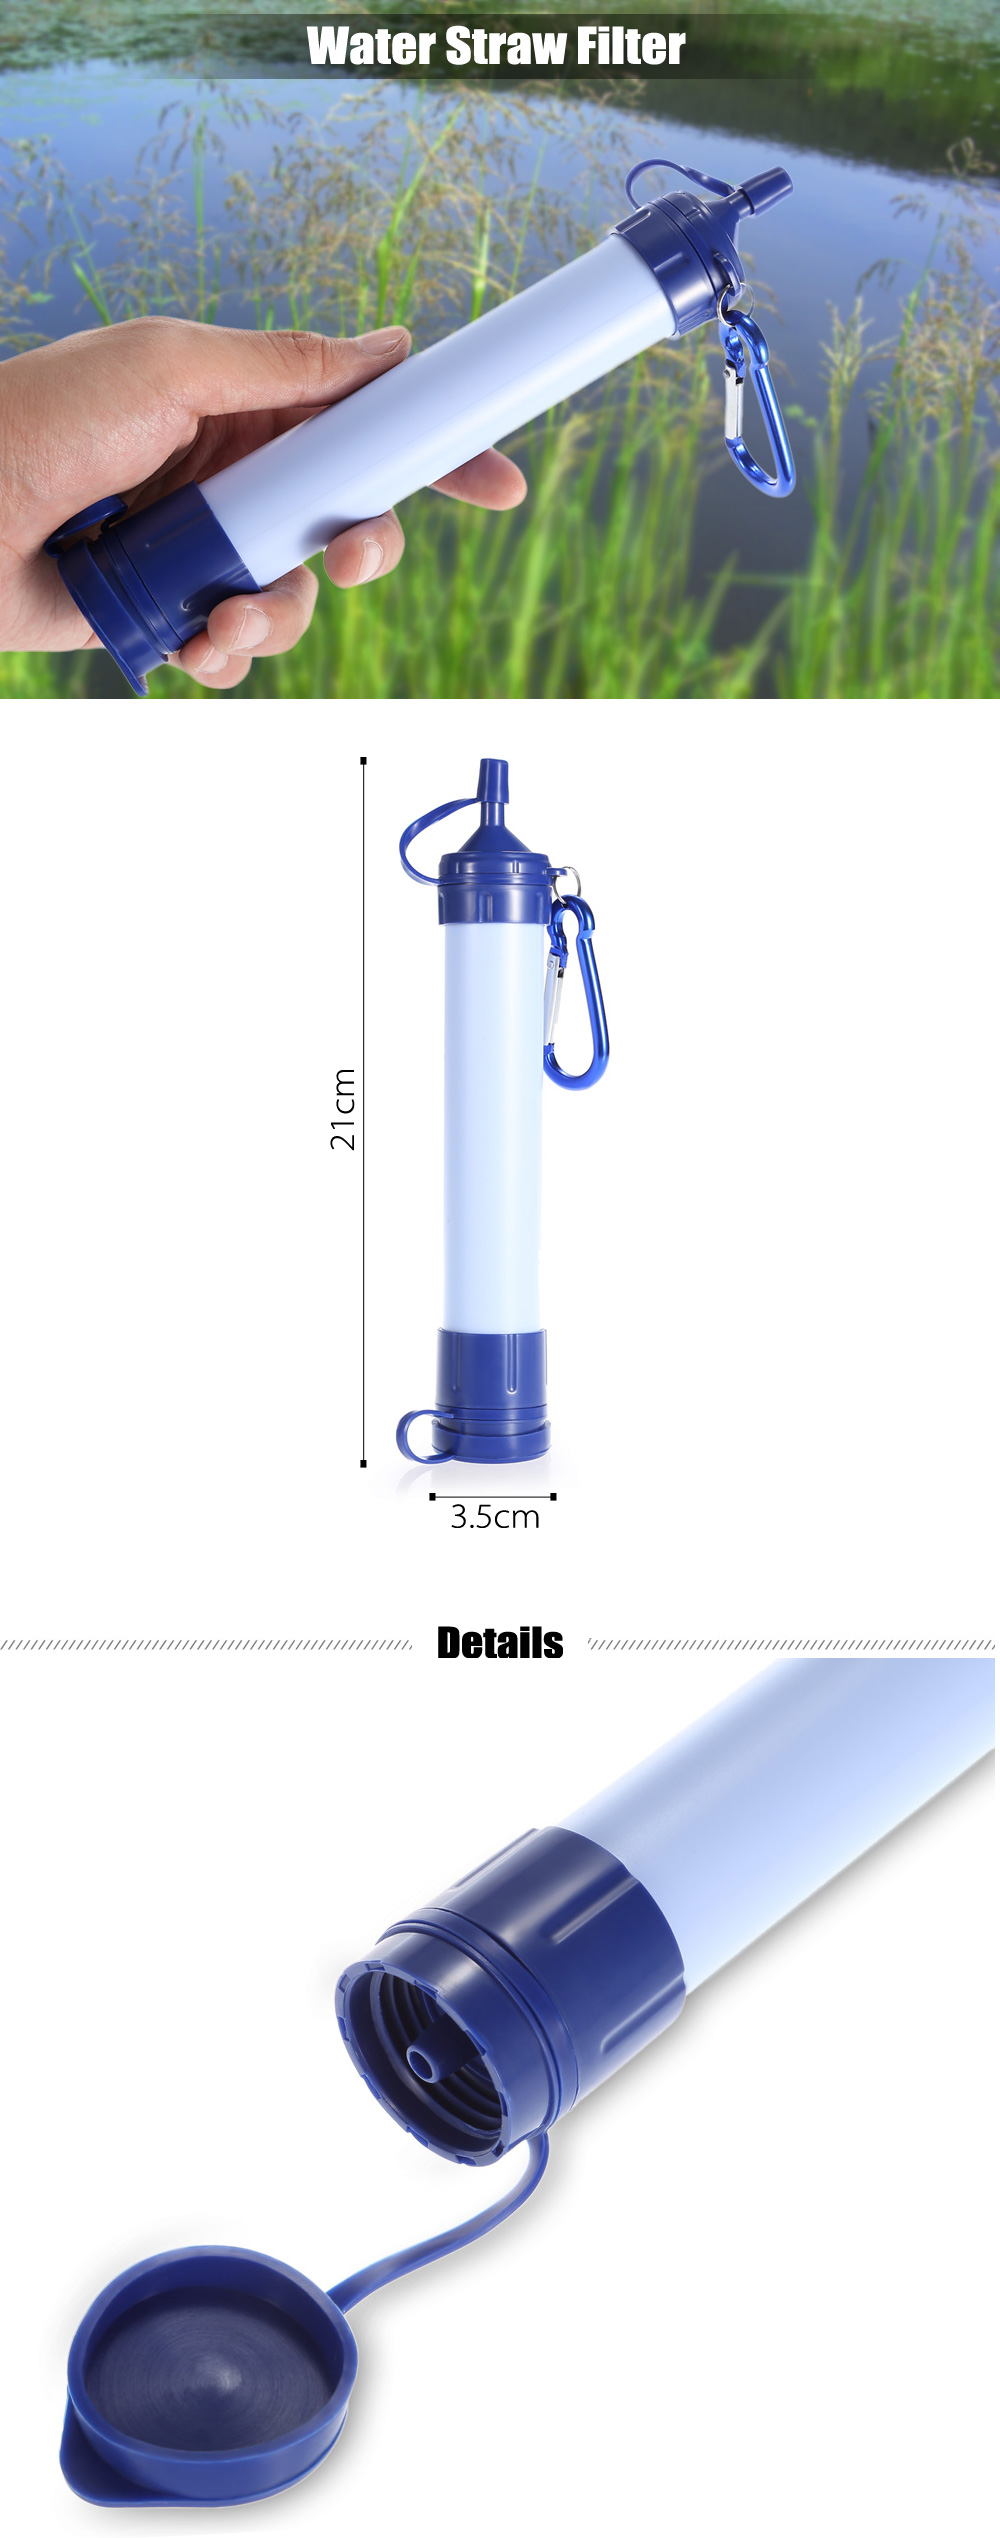 Portable Water Straw Filter Purification Tool with Hanging Buckle for Camping Survival